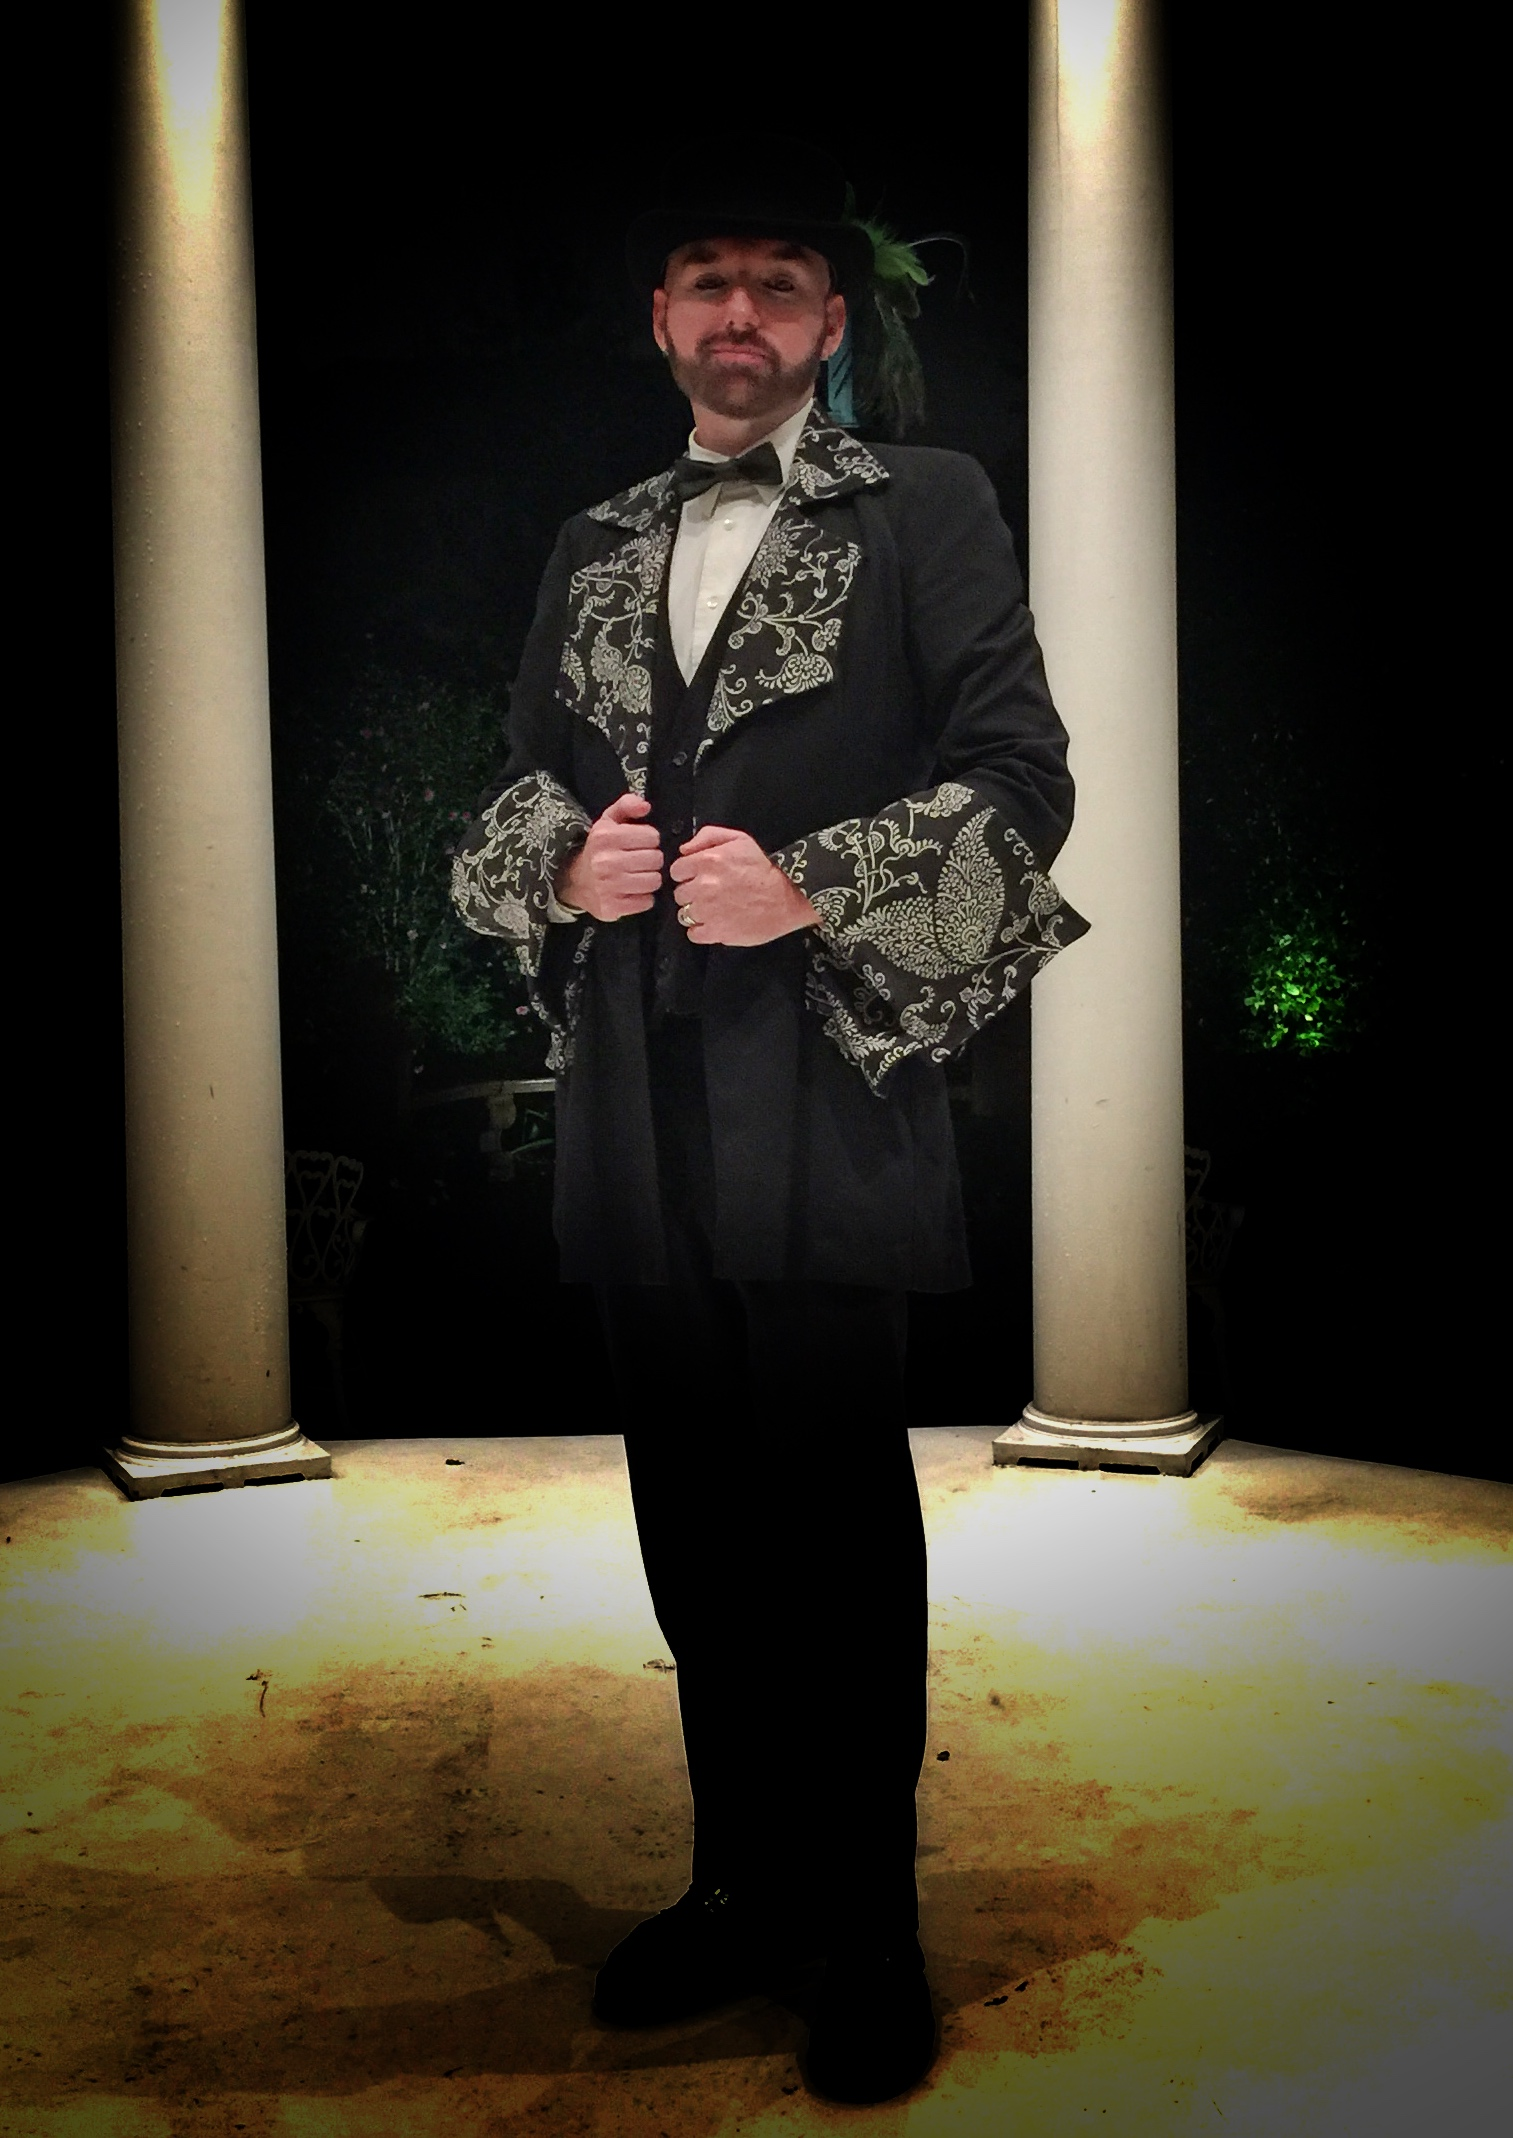 The Sabbatic Dance, at the New Orleans Witches Ball 2015